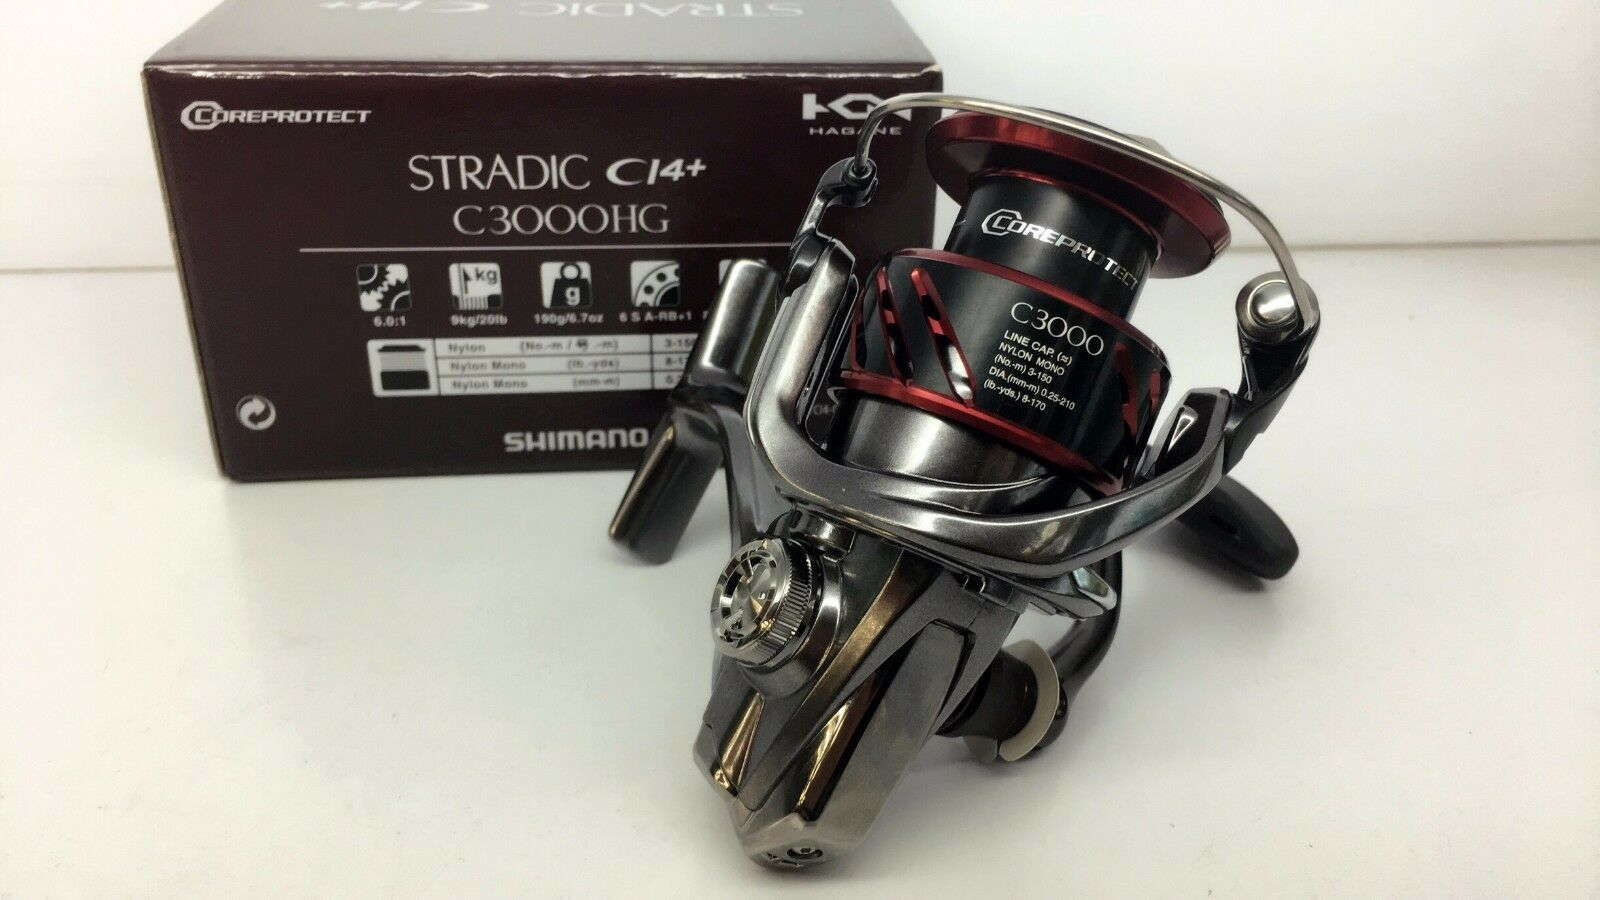 SHIMANO STRADIC C3000HG FB CI4+ Reel C3000HGFB  FEDEX PRIORITY 2 DAYS SHIP TO USA  export outlet